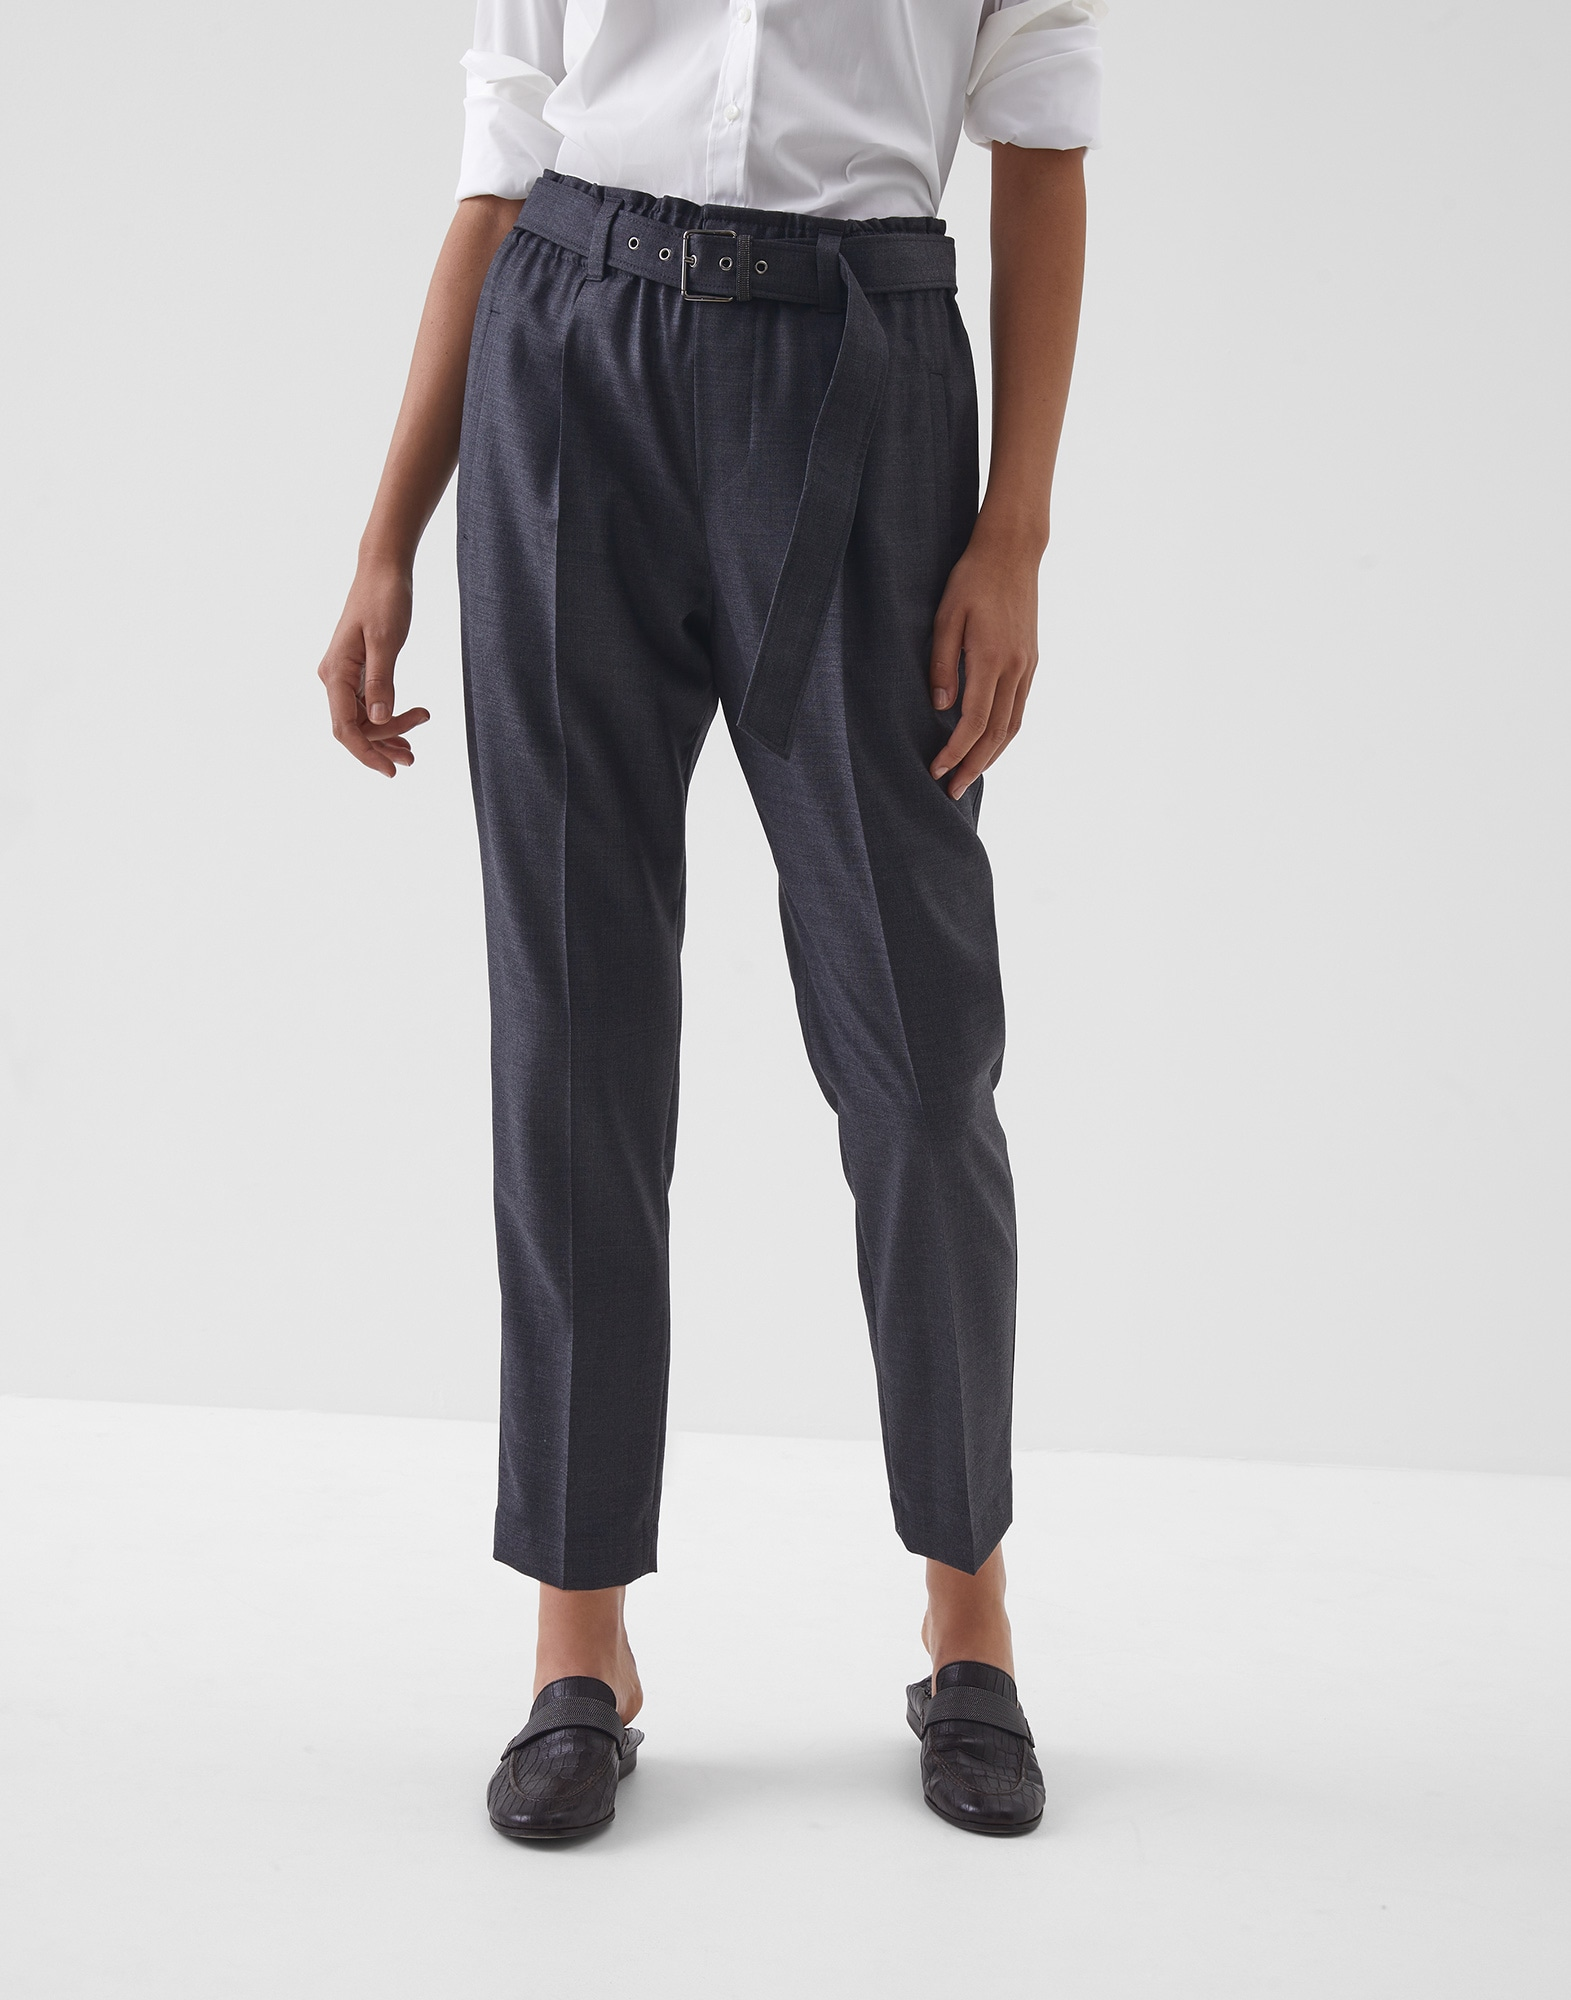 Trousers Lignite Woman 0 - Brunello Cucinelli